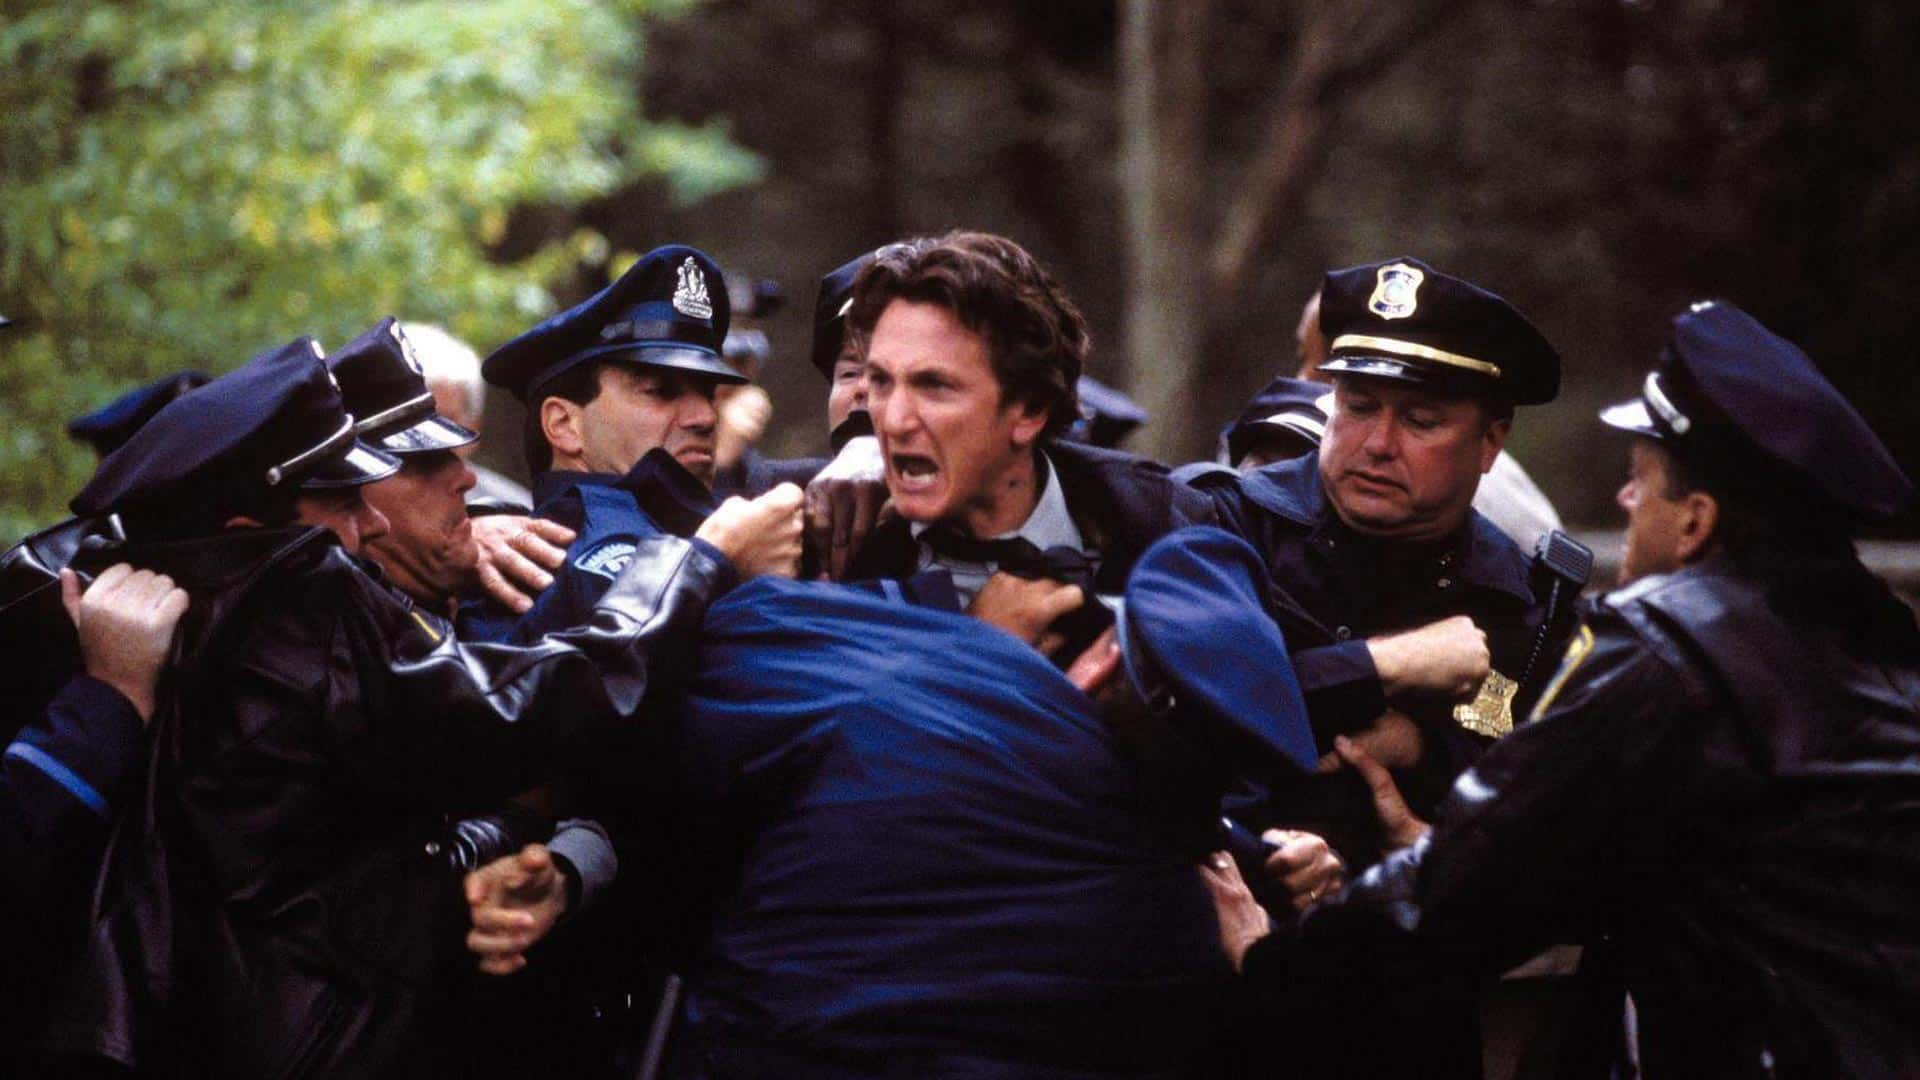 Mystic River – thriller movie